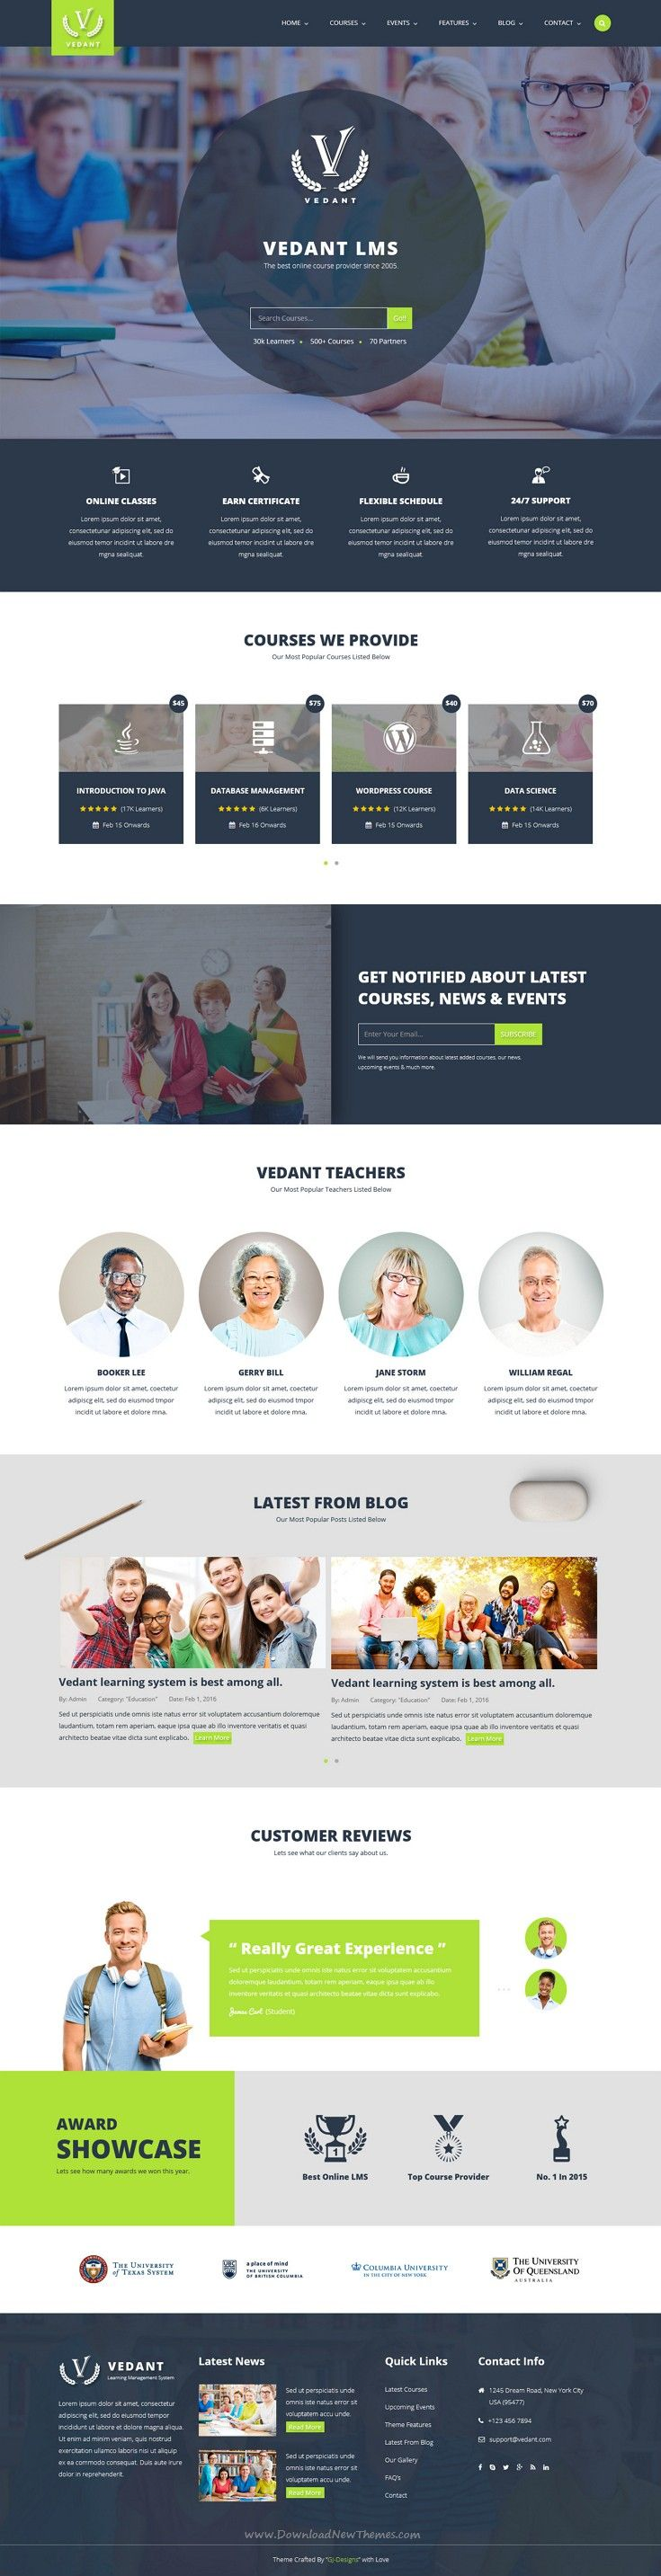 Vedant is perfect educational bootstrap template for school, #university, online #courses or video blogs complete learning management system #website. Download Now!